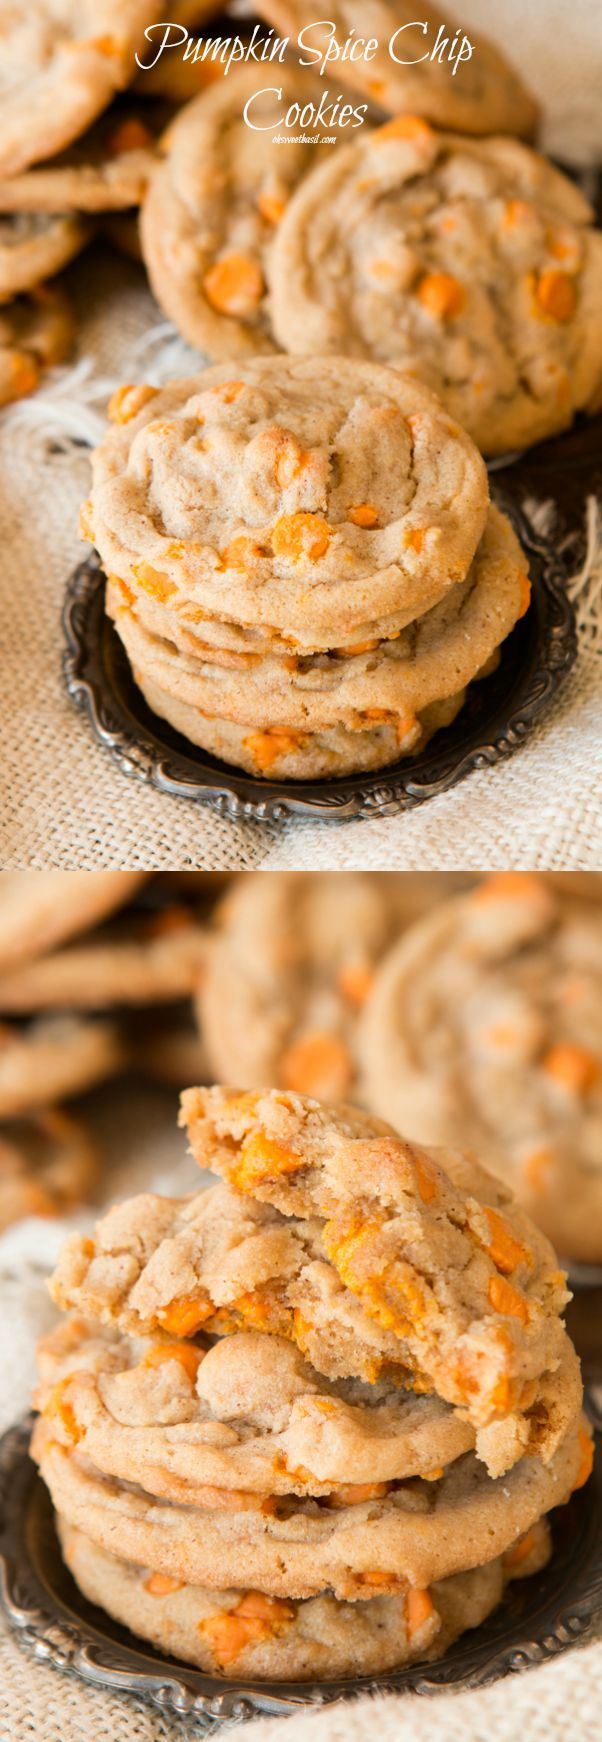 We are loving these pumpkin spice chips in an easy spice cookie! ohsweetbasil.com